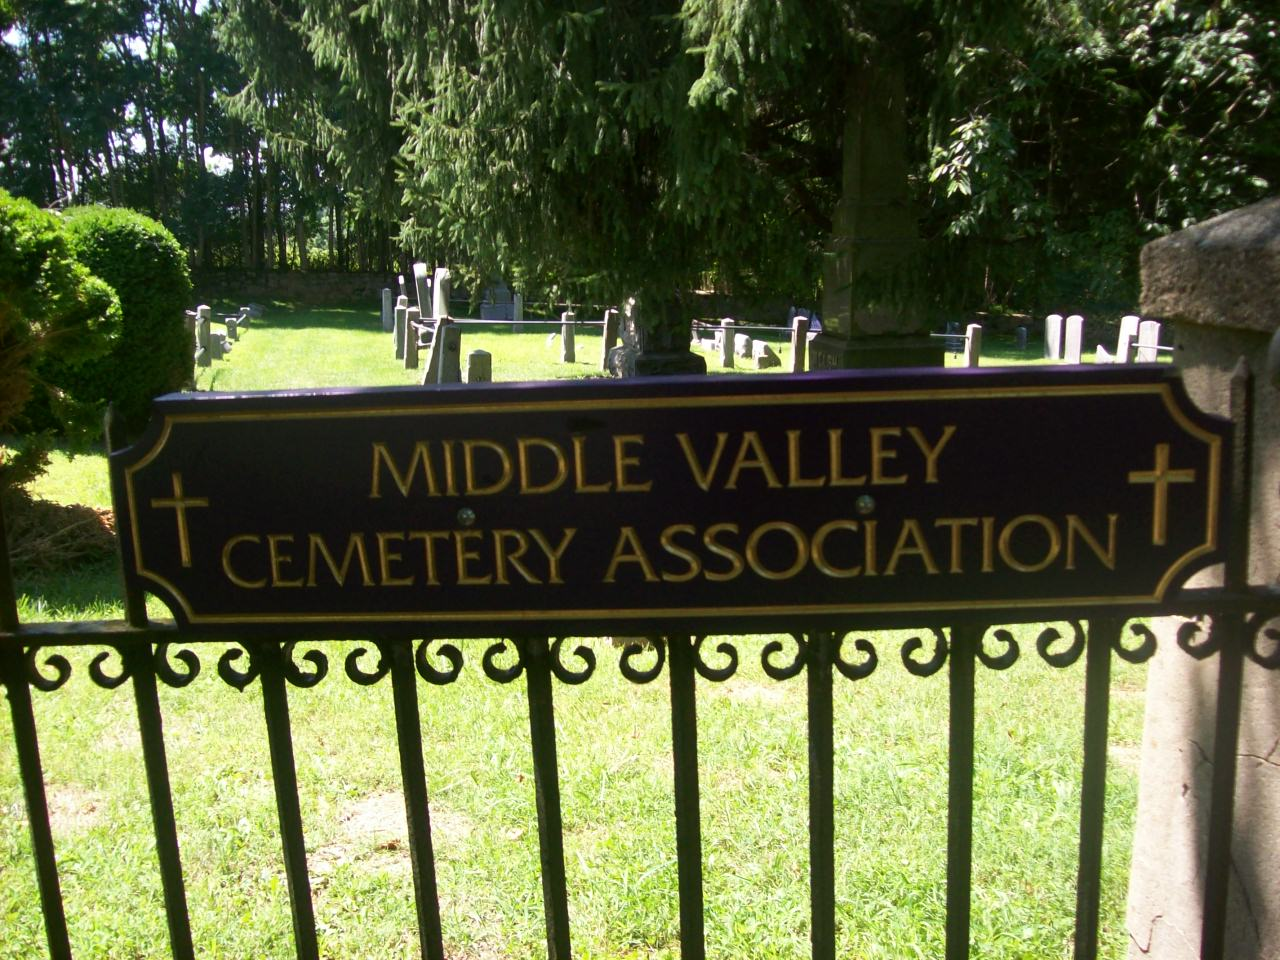 Middle Valley Cemetery